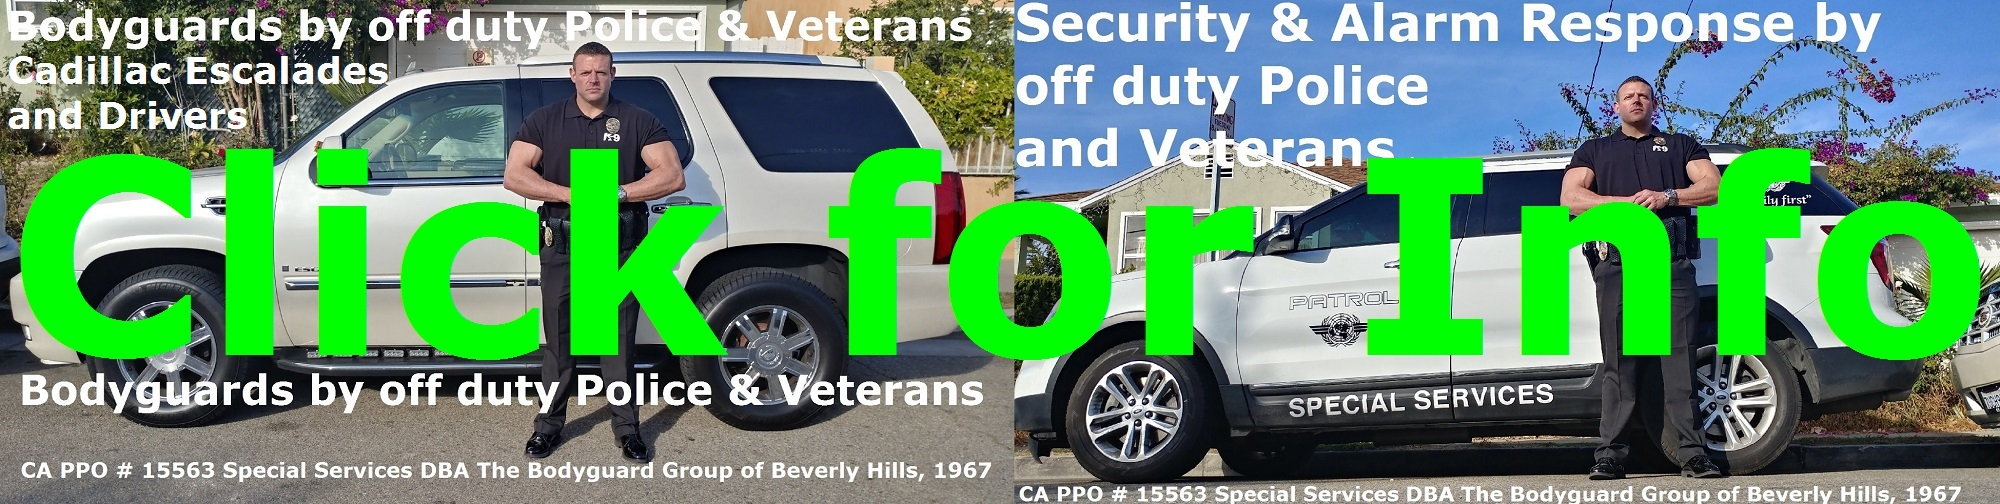 Beverly HIlls Security Patrol & Bodyguards, SST PPO 15563, Beverly Hills security bodyguards for hire, The Bodyguard Group of Beverly Hills, CA, 90210, Beverly HIlls alarm response by off duty Police